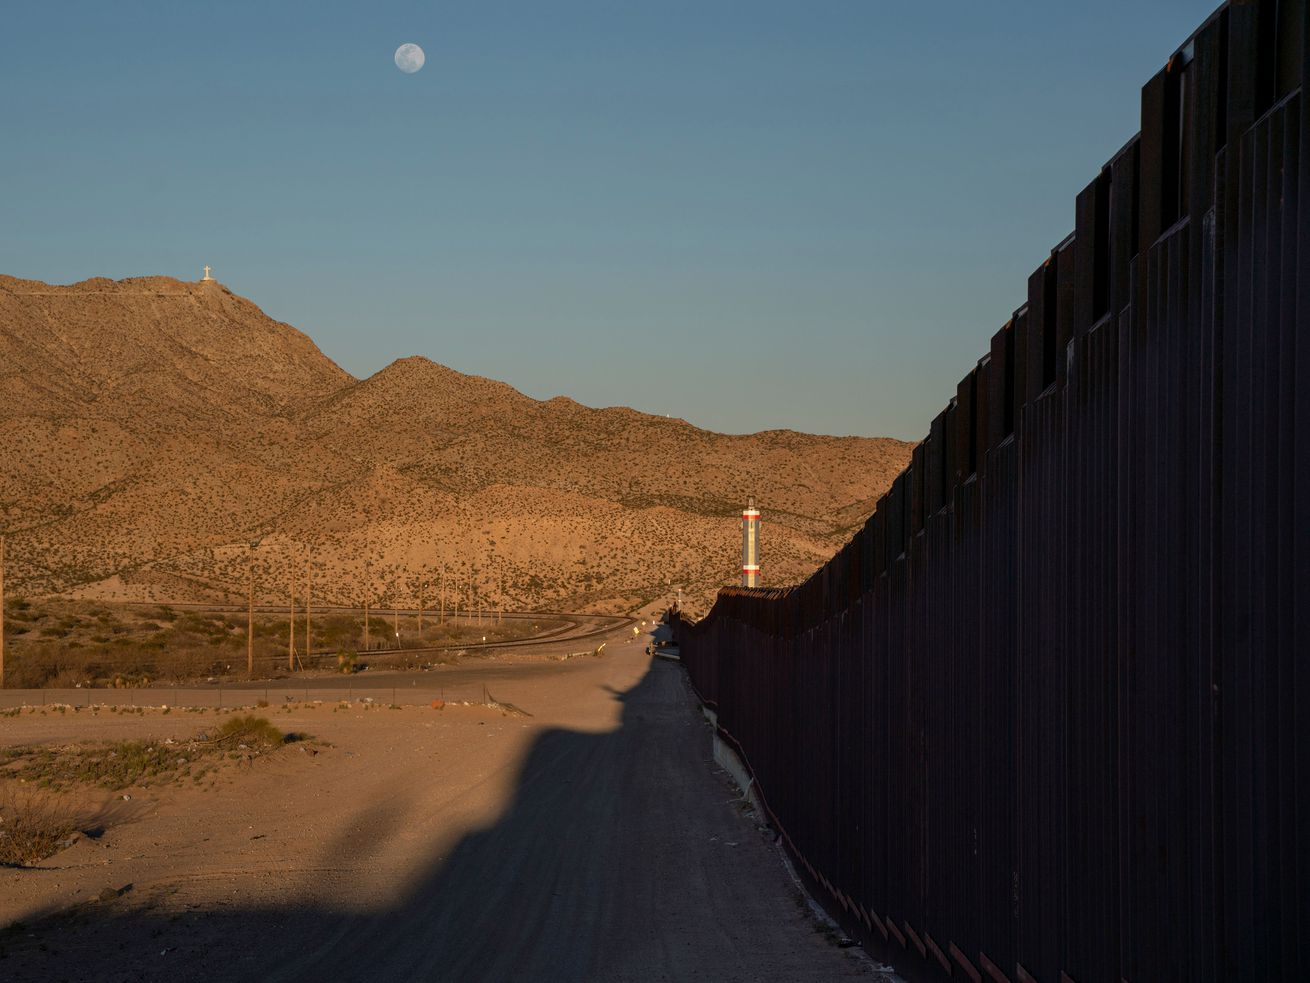 The US-Mexico border, as seen from New Mexico.